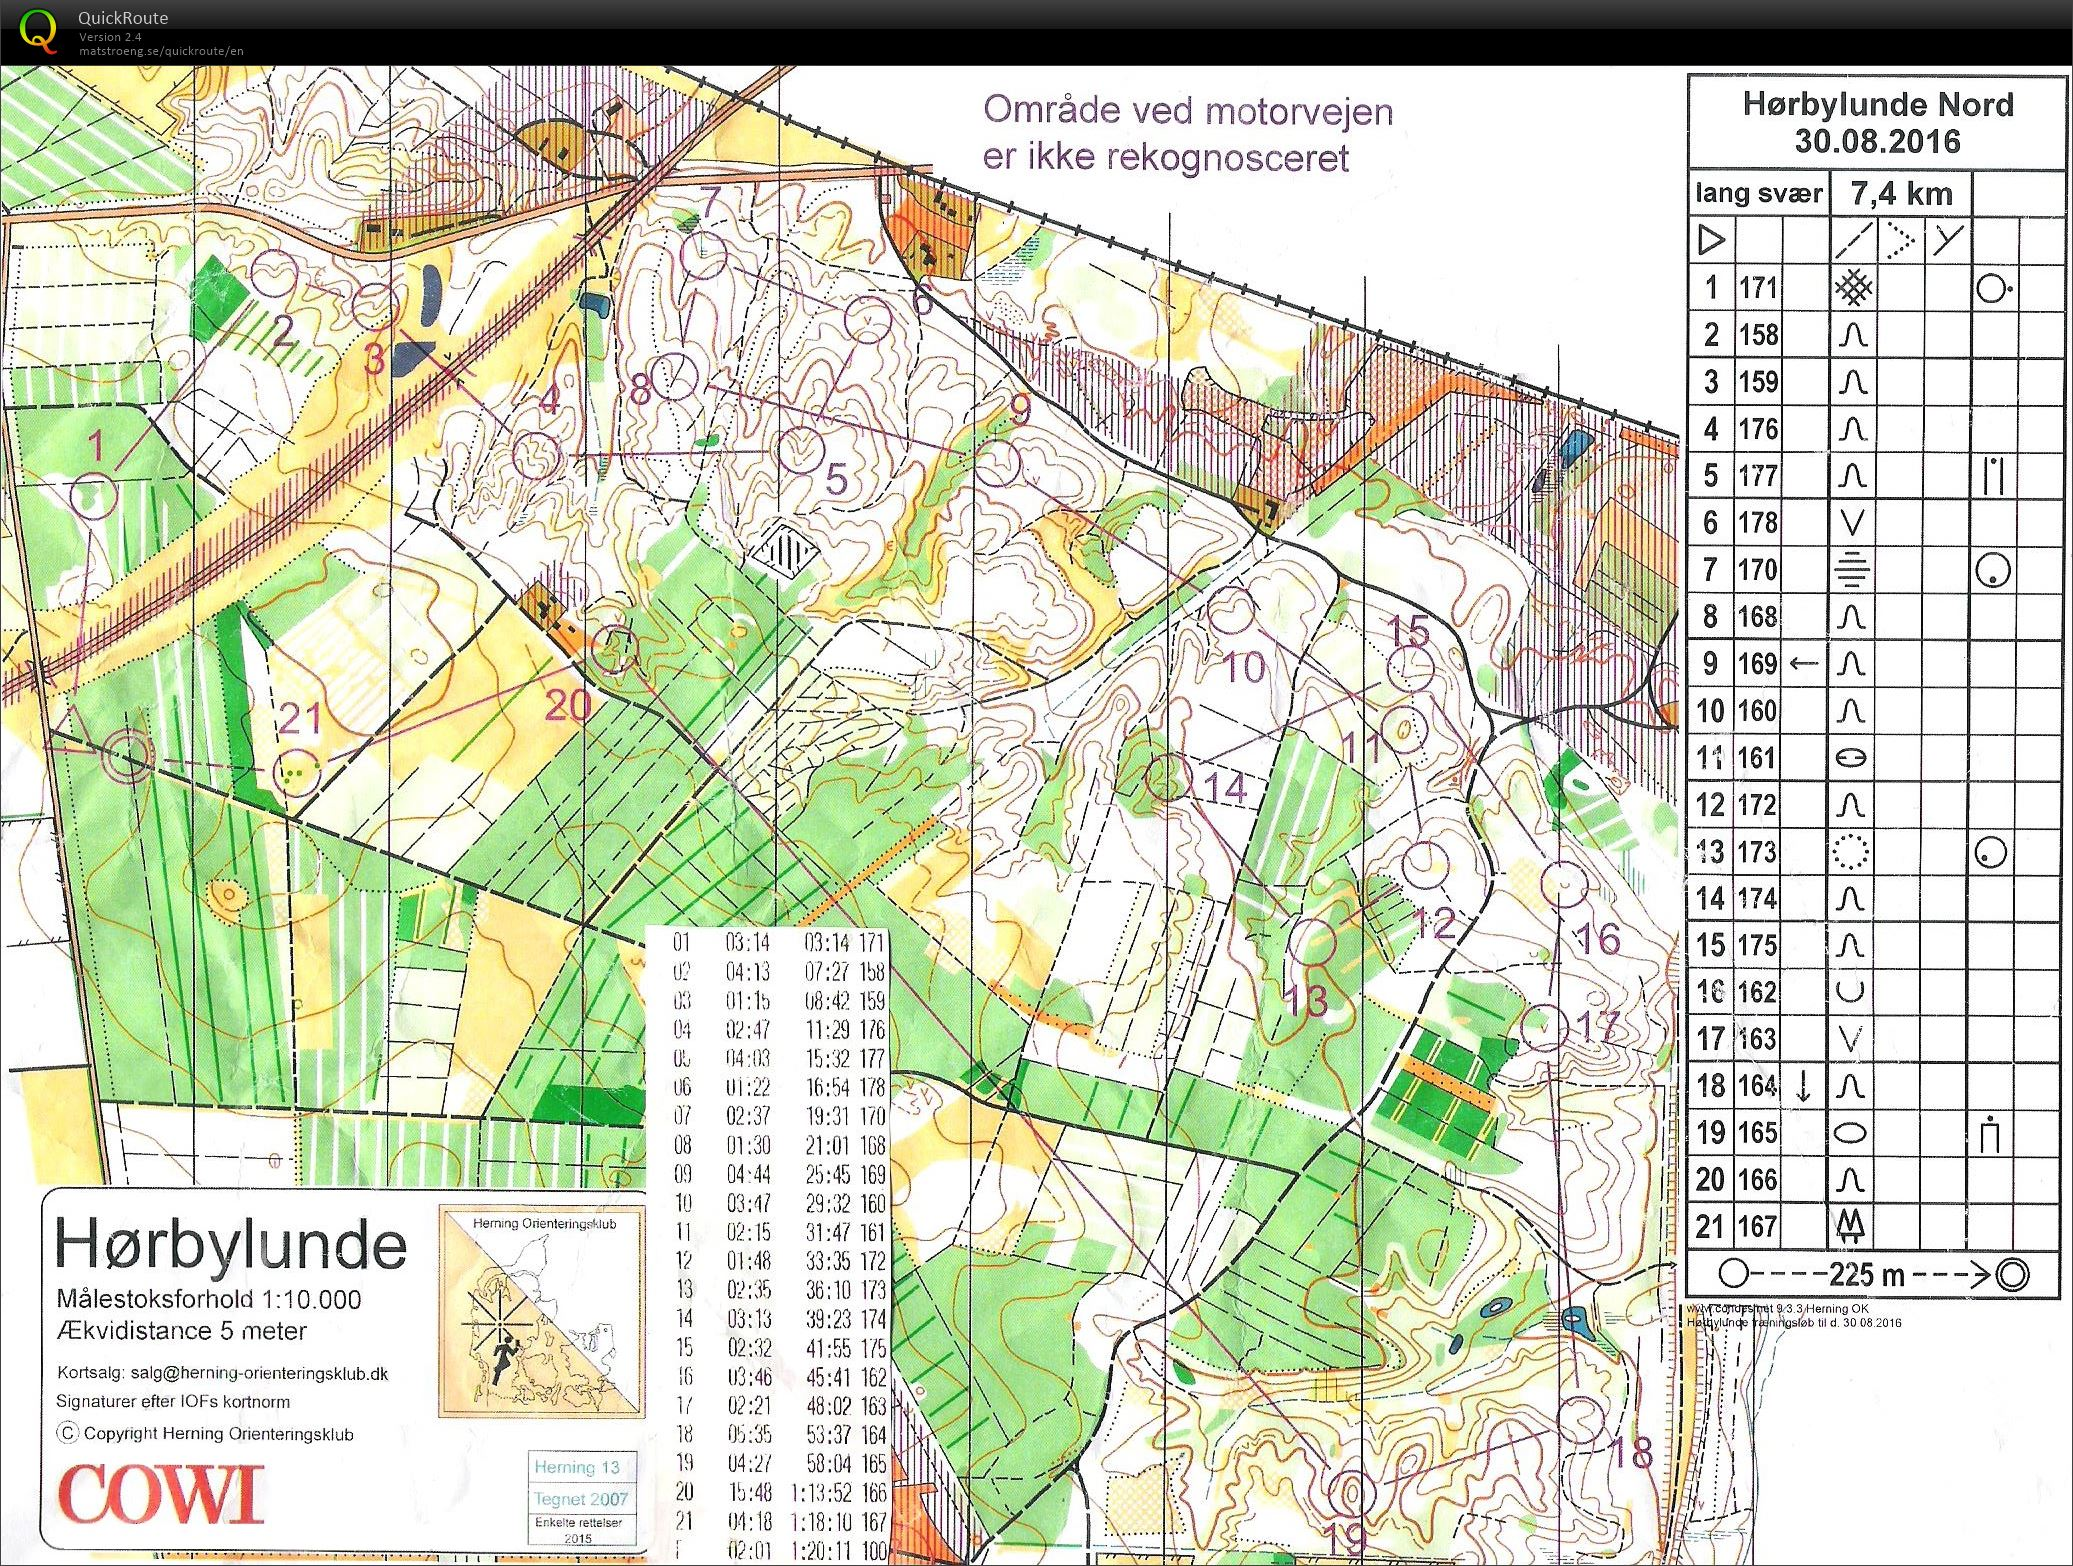 Hrbylunde Nord Bane 1 August 30th 2016 Orienteering Map from